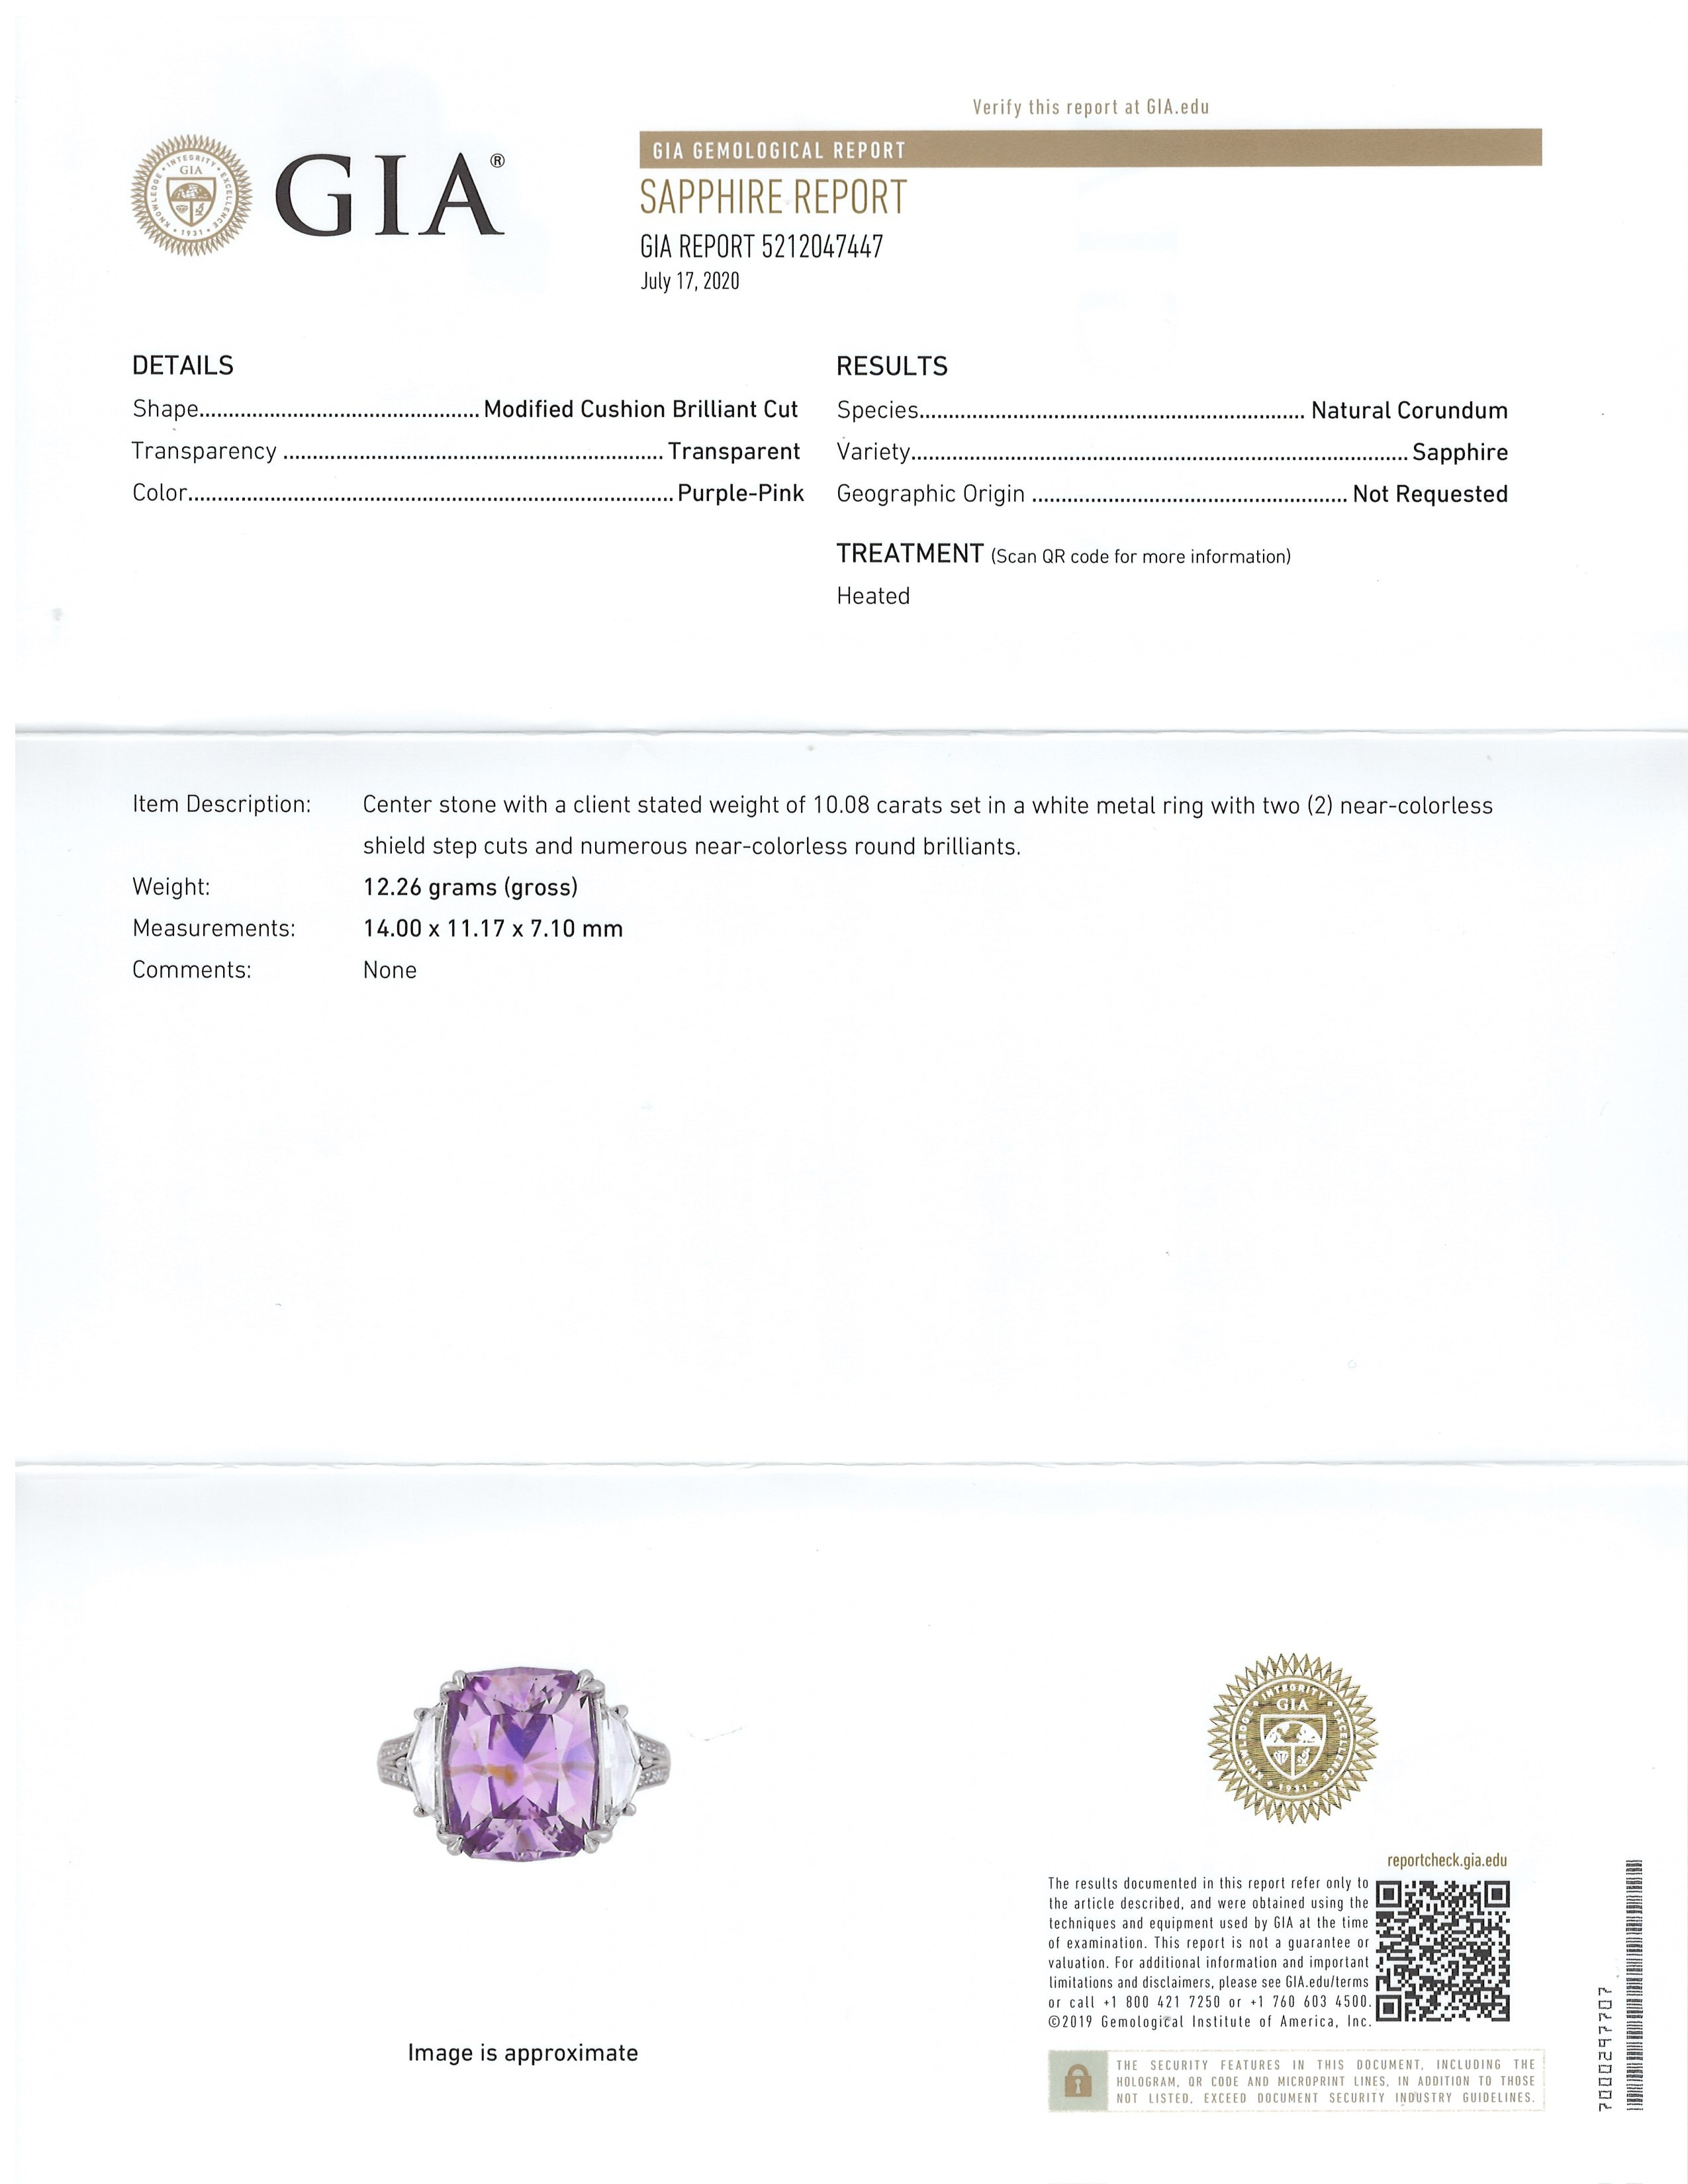 10.08ct Purplish Pink Sapphire Ring Certification 3